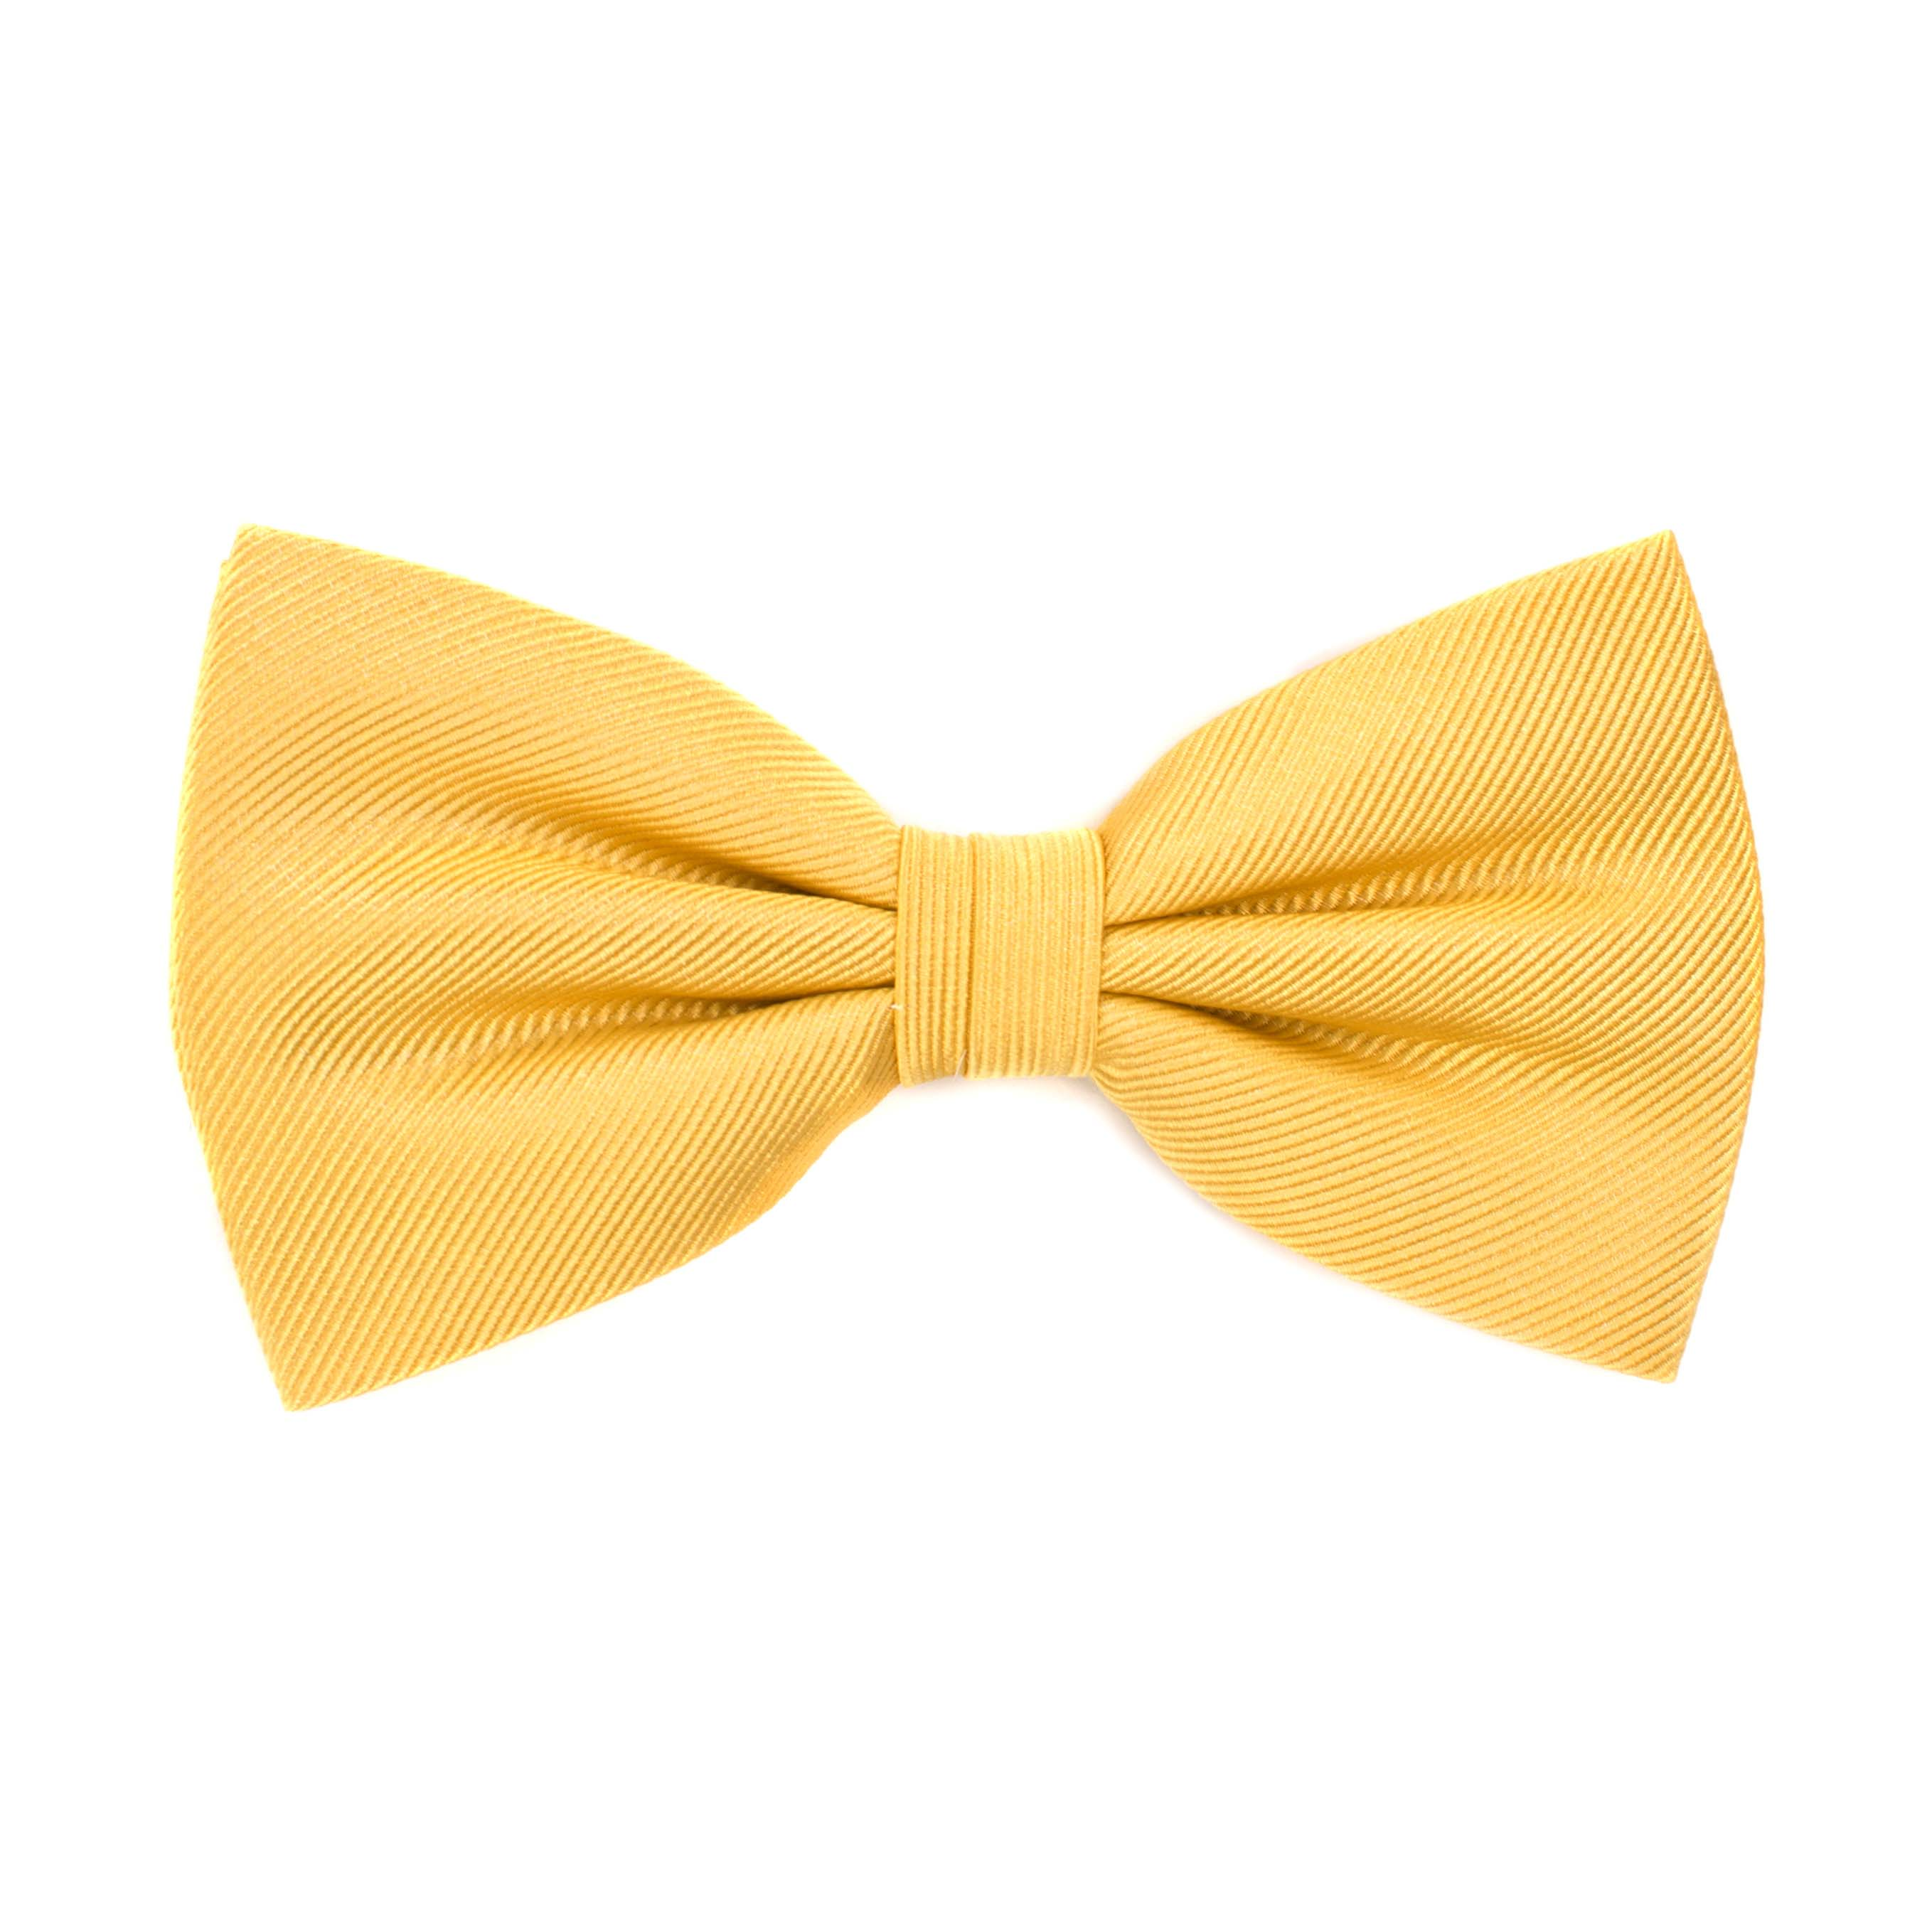 Bow tie classic ribbed gold